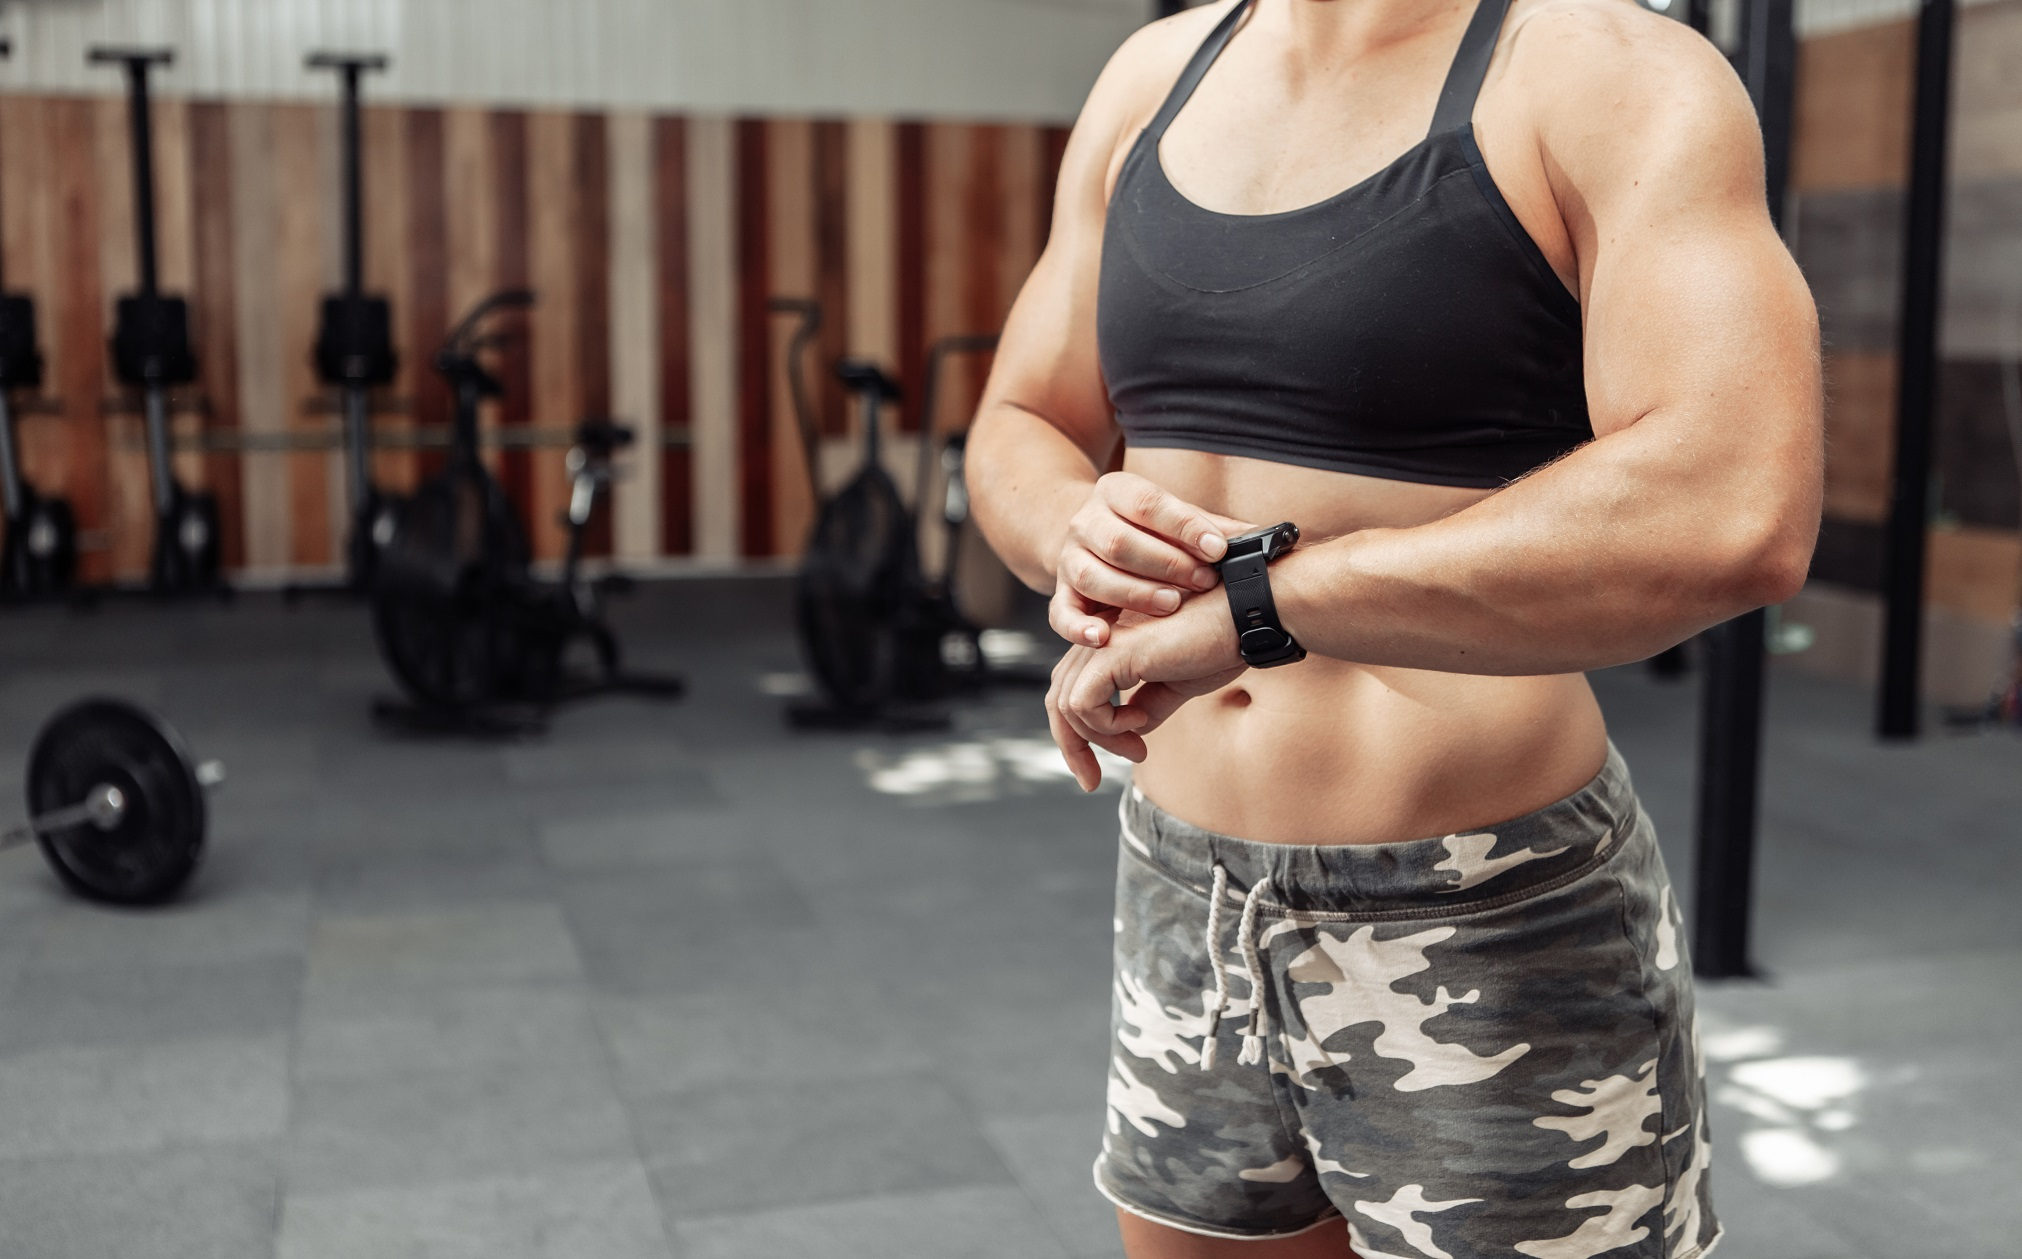 Woman training to build muscle fast